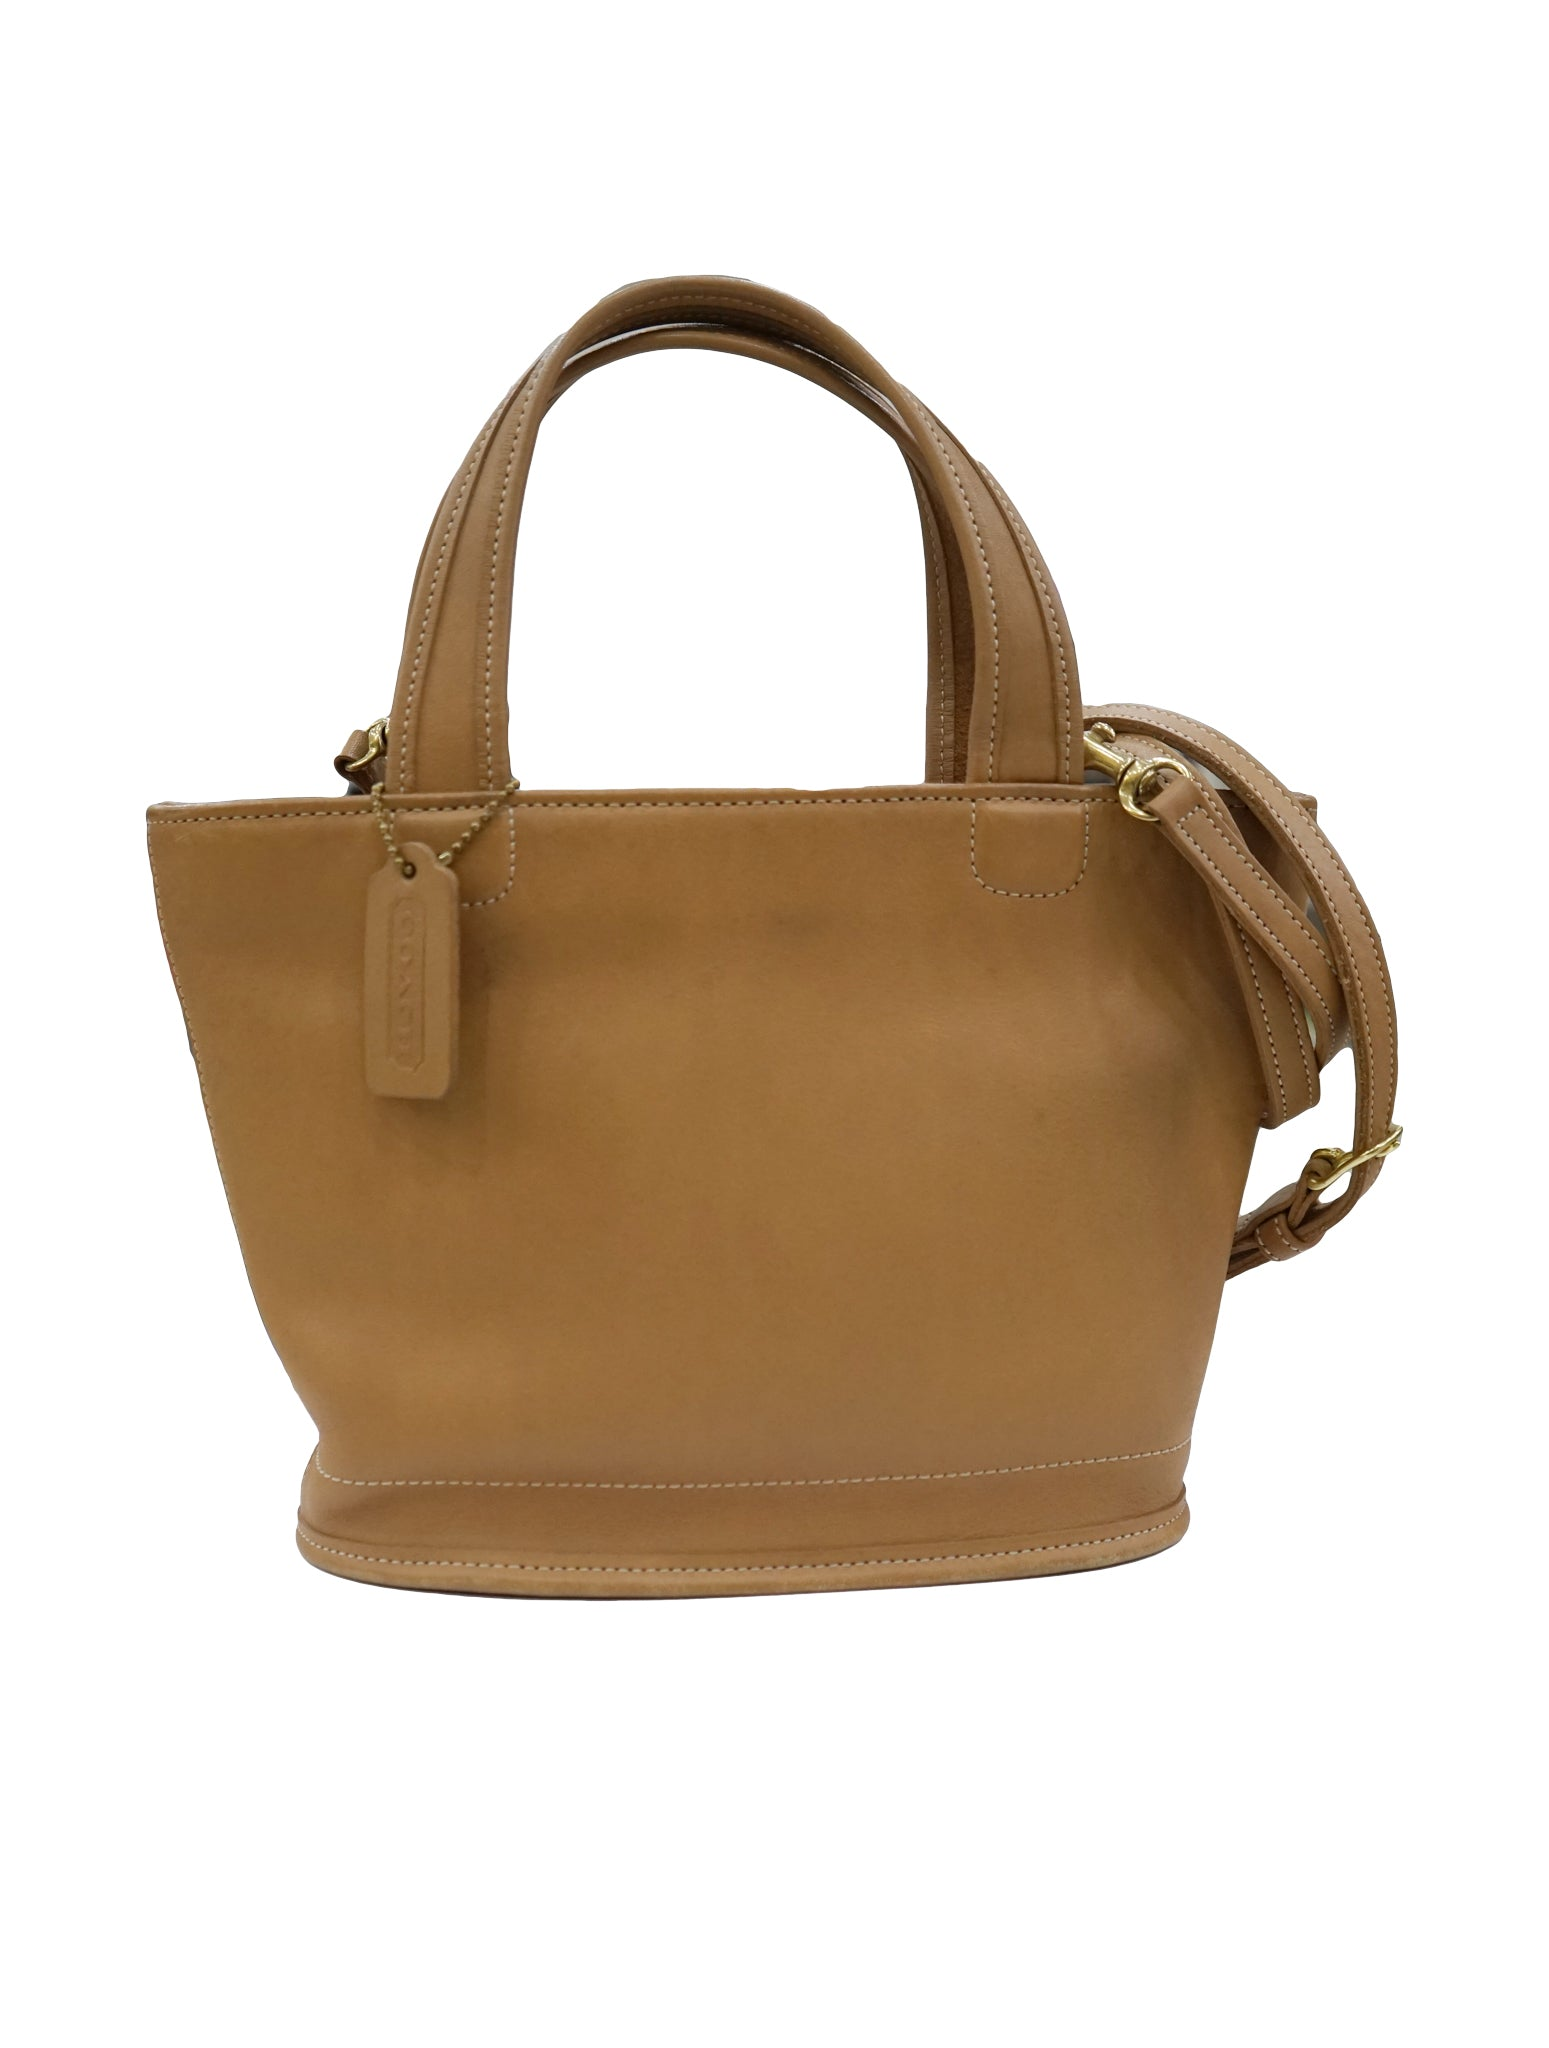 LEATHER NORTH SOUTH TOP HANDLE BAG